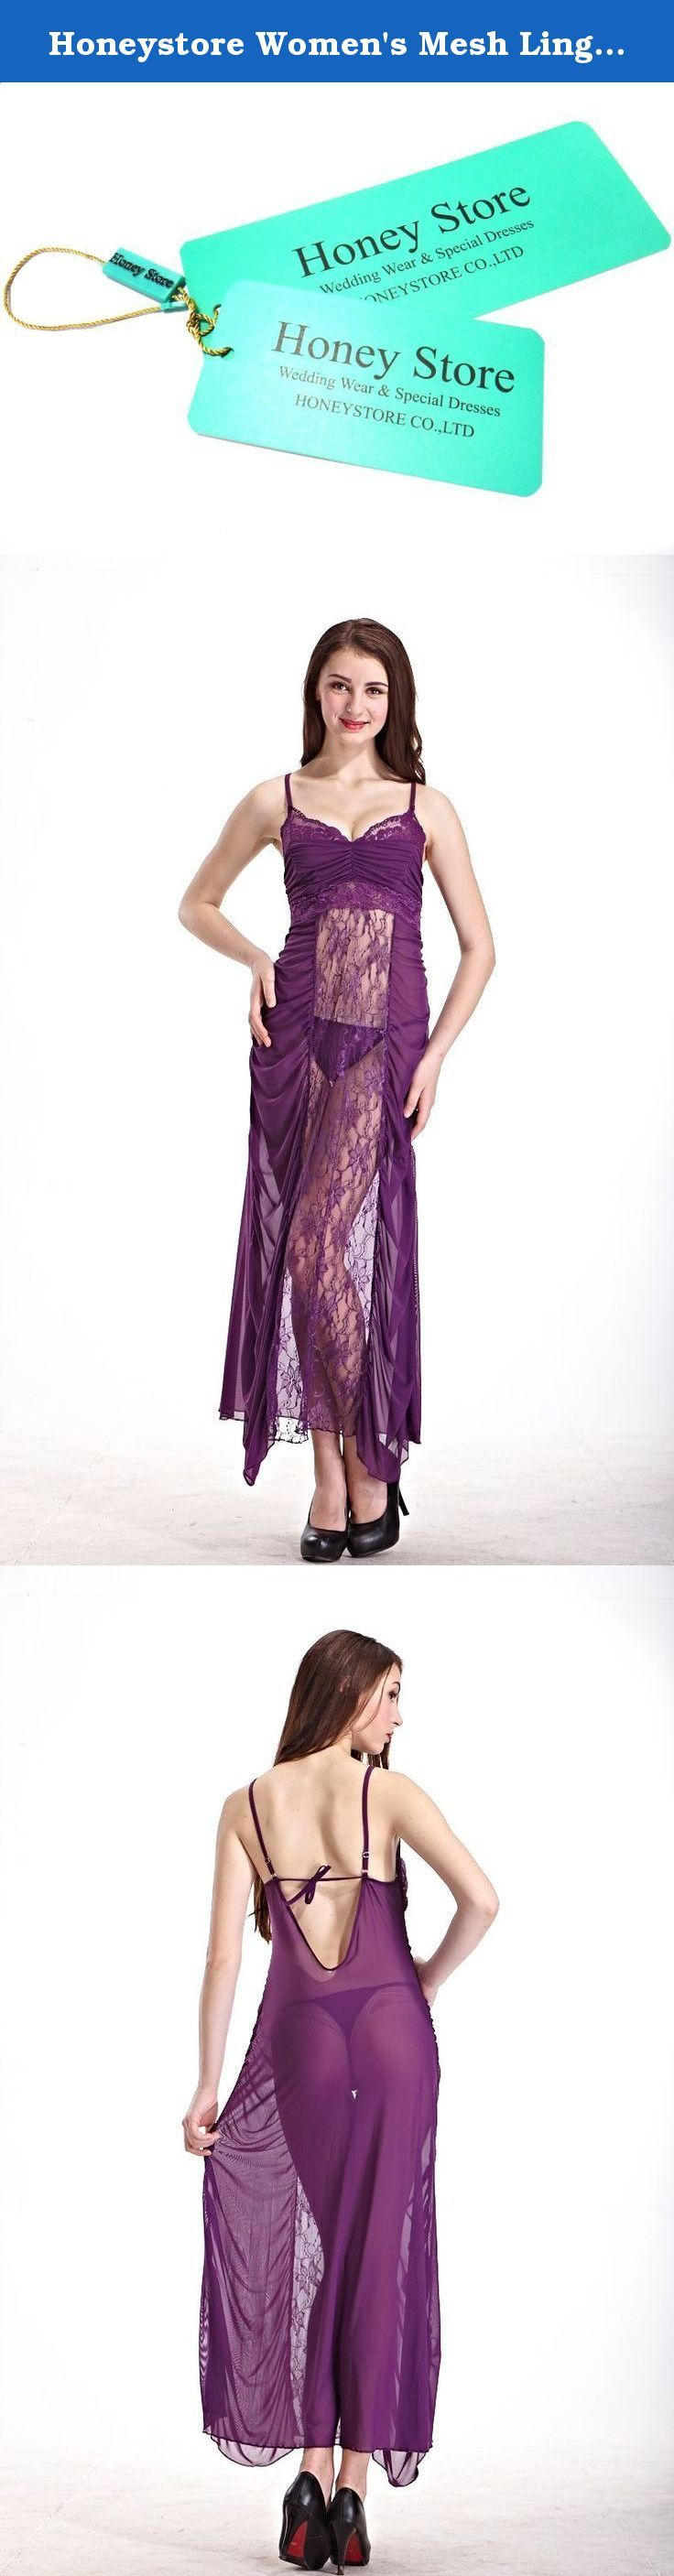 Honeystore Women's Mesh Lingerie Transparent Lace Nightgown Long Dress Sleepwear Purple. For a well-planned night, this sheer long lingerie nightgown robe is very sexy to make your intimate lover cheer up for your alluring silhouette. This nightwear long gown lingerie dress is an enhancer of women's charm and confidence.